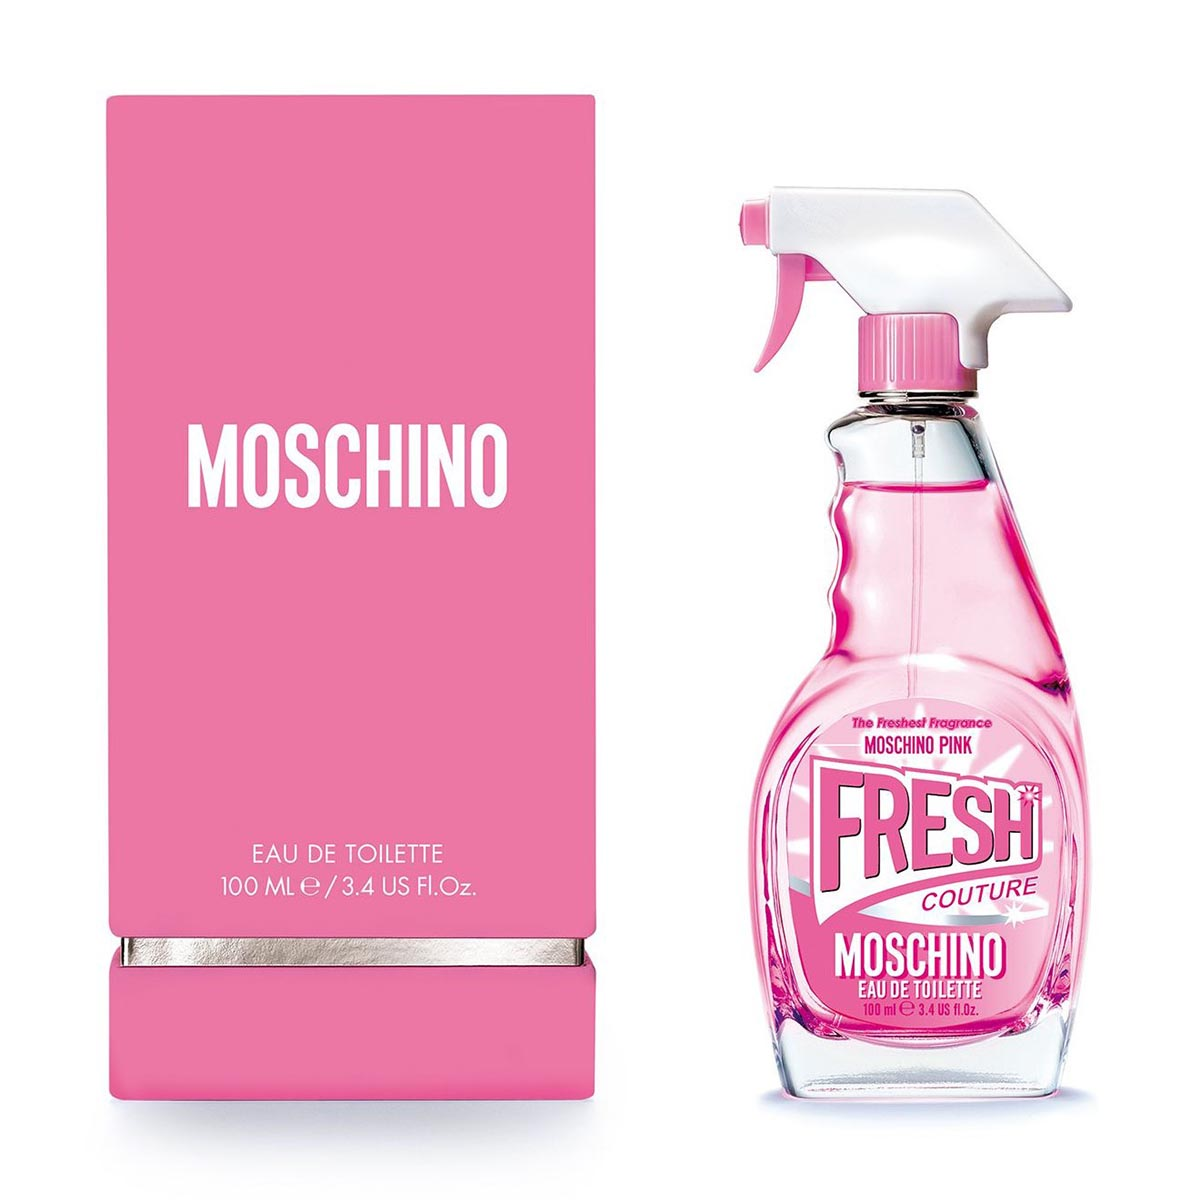 Moschino pink fresh couture eau de toilette 100ml vaporizador